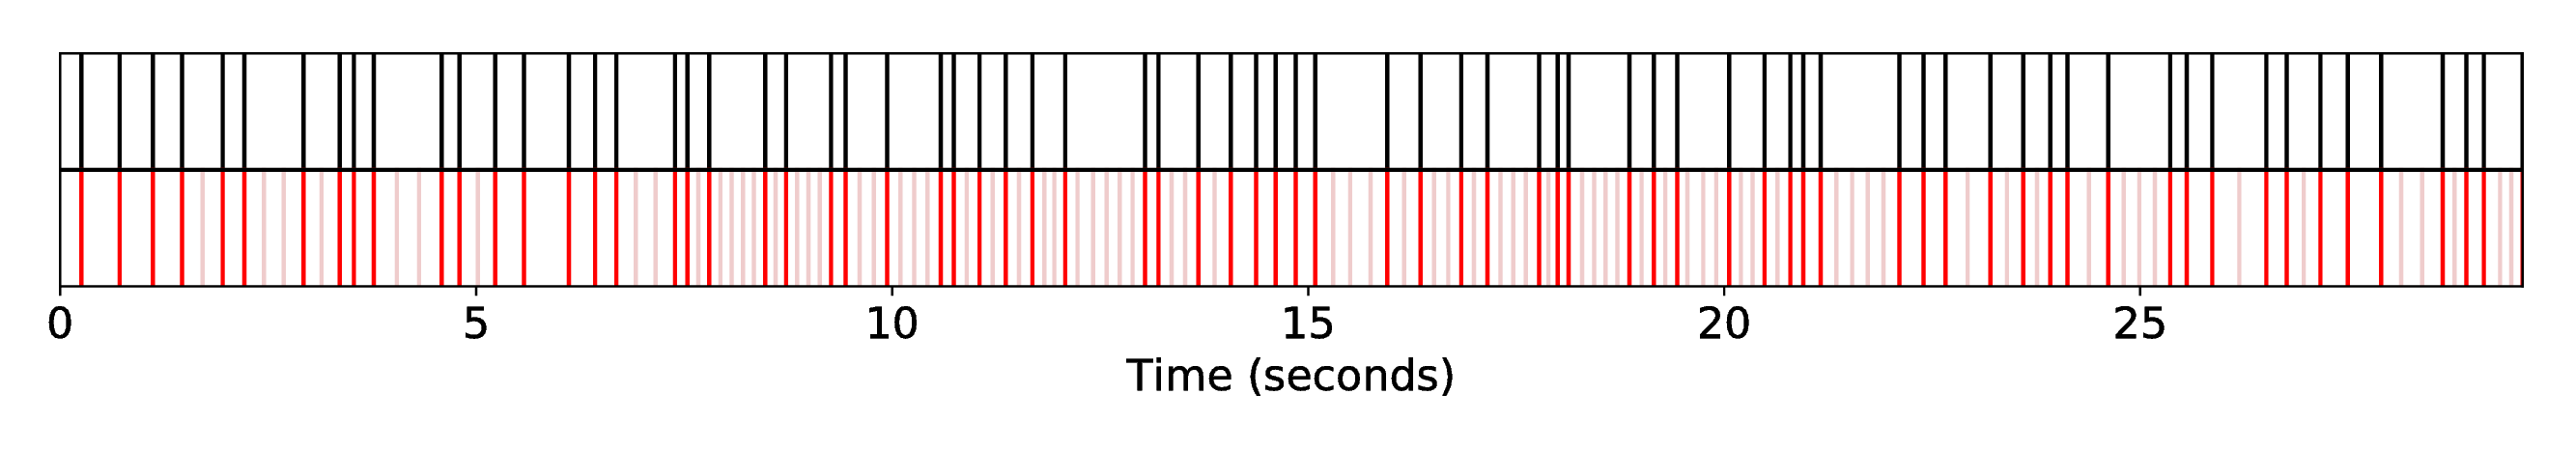 DP1_INT1_R-Syn-Ra__S-Silence__SequenceAlignment